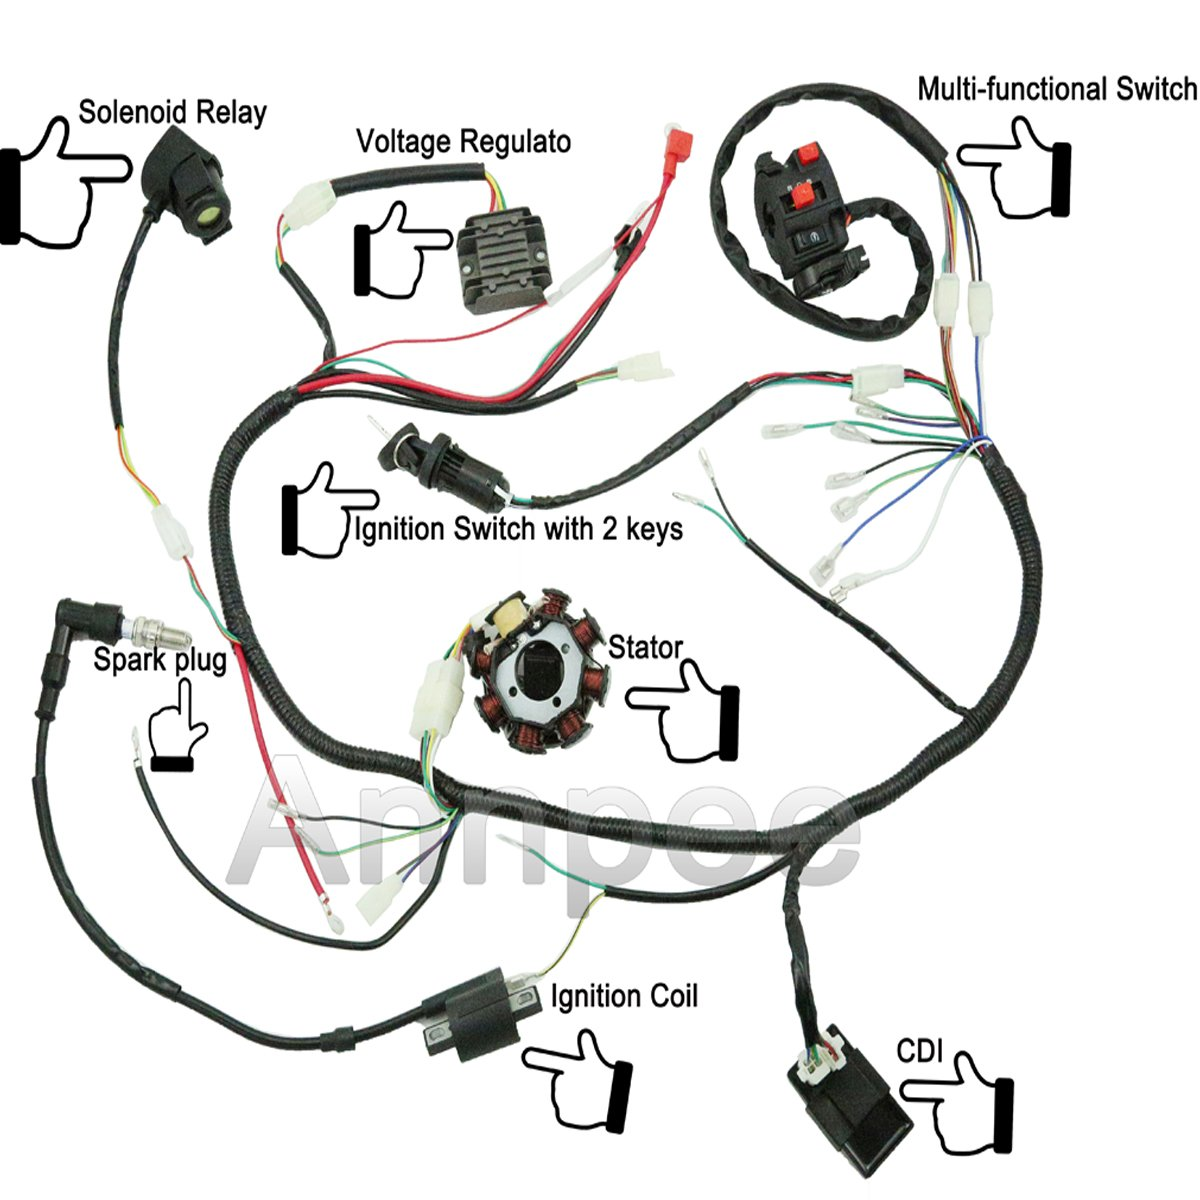 amazon jikan annpee plete wiring harness kit wire loom Wiring 2 Switches One Light To amazon jikan annpee plete wiring harness kit wire loom electrics stator coil cdi for atv quad 4 four wheelers 150cc 200cc 250cc go kart dirt pit